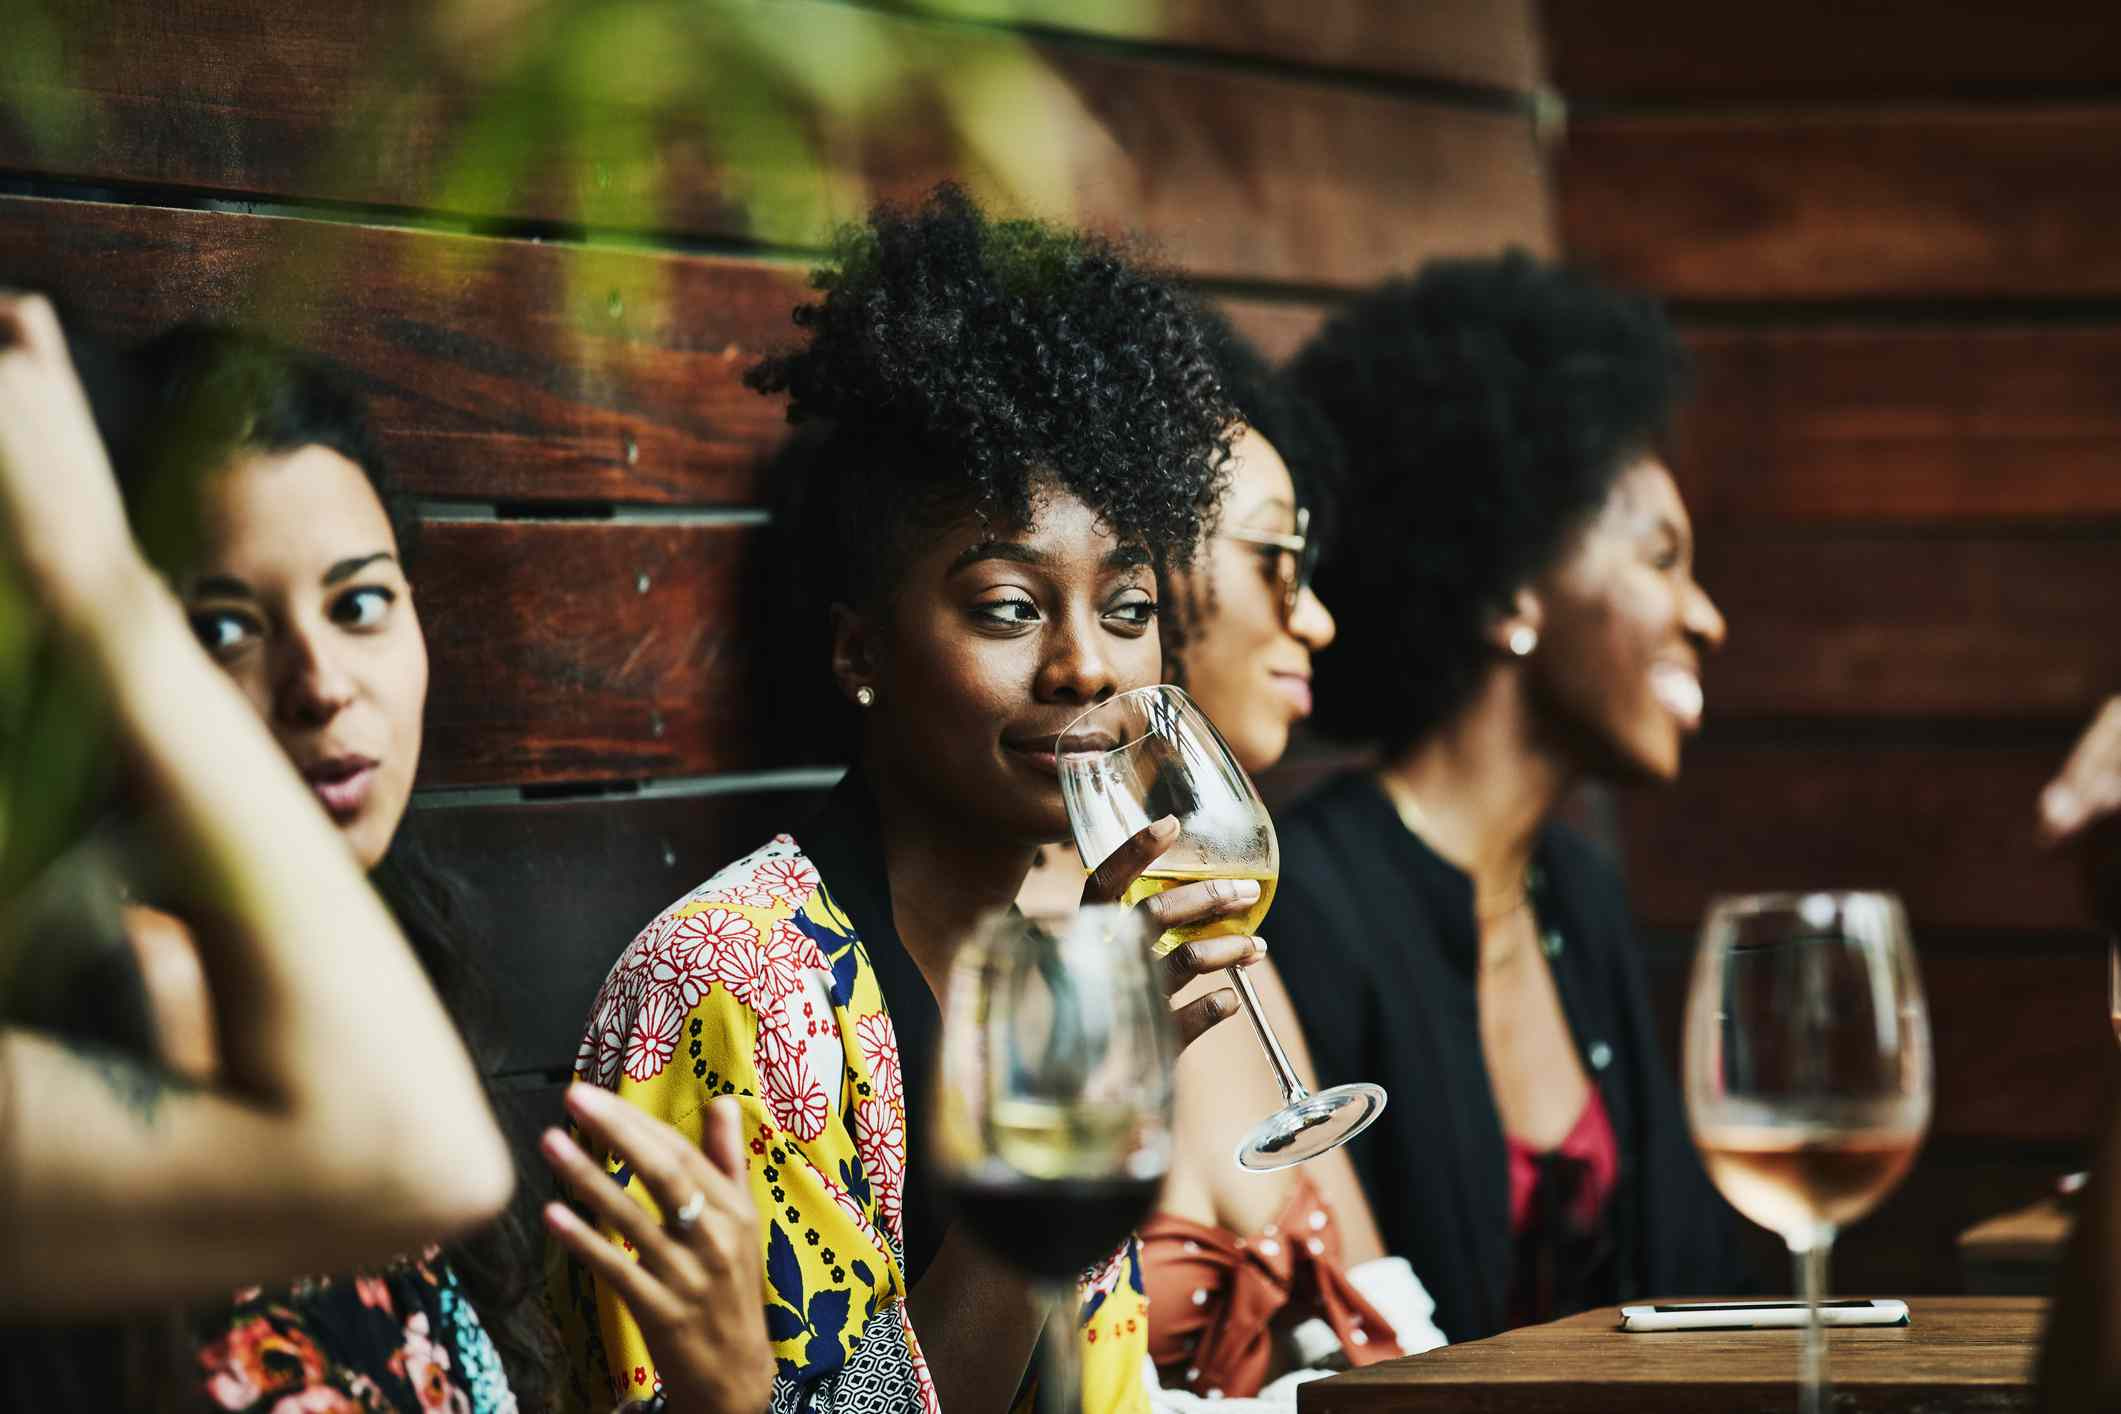 Young woman gather at table with glasses of wine and conversing